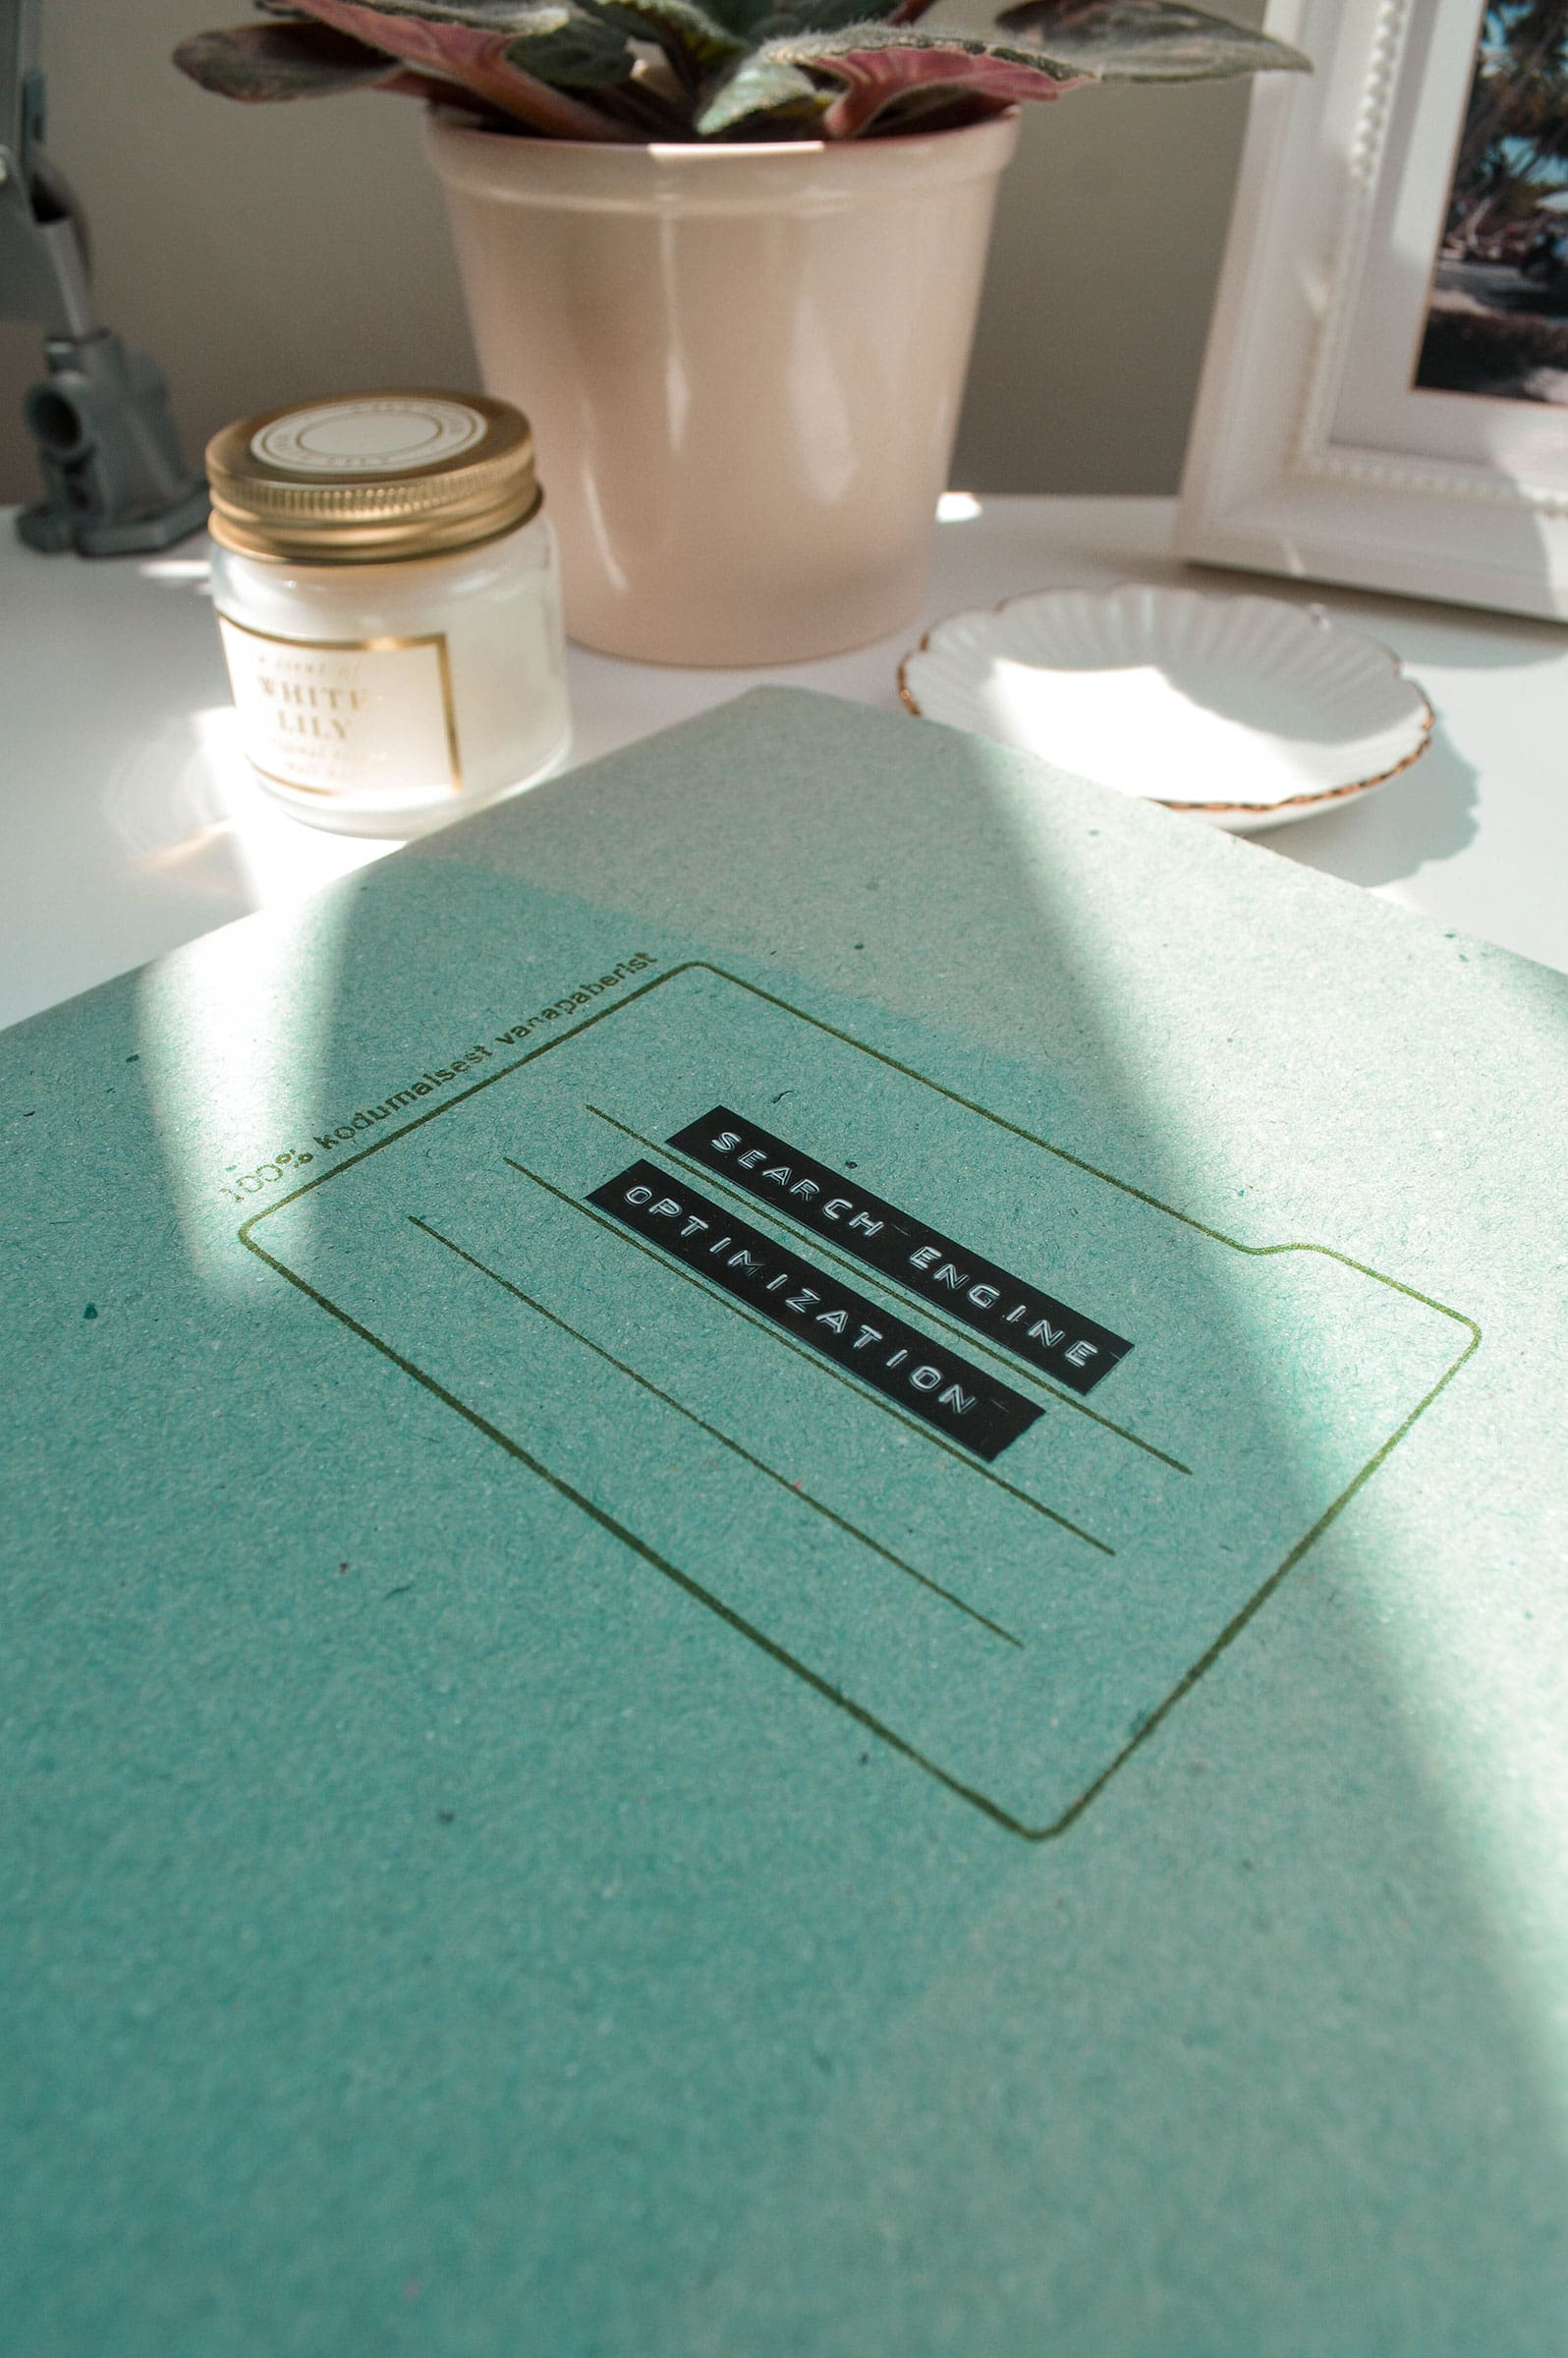 """Folder titled """"Search Engine Optimization"""" laying on the table, surrounded with decor"""